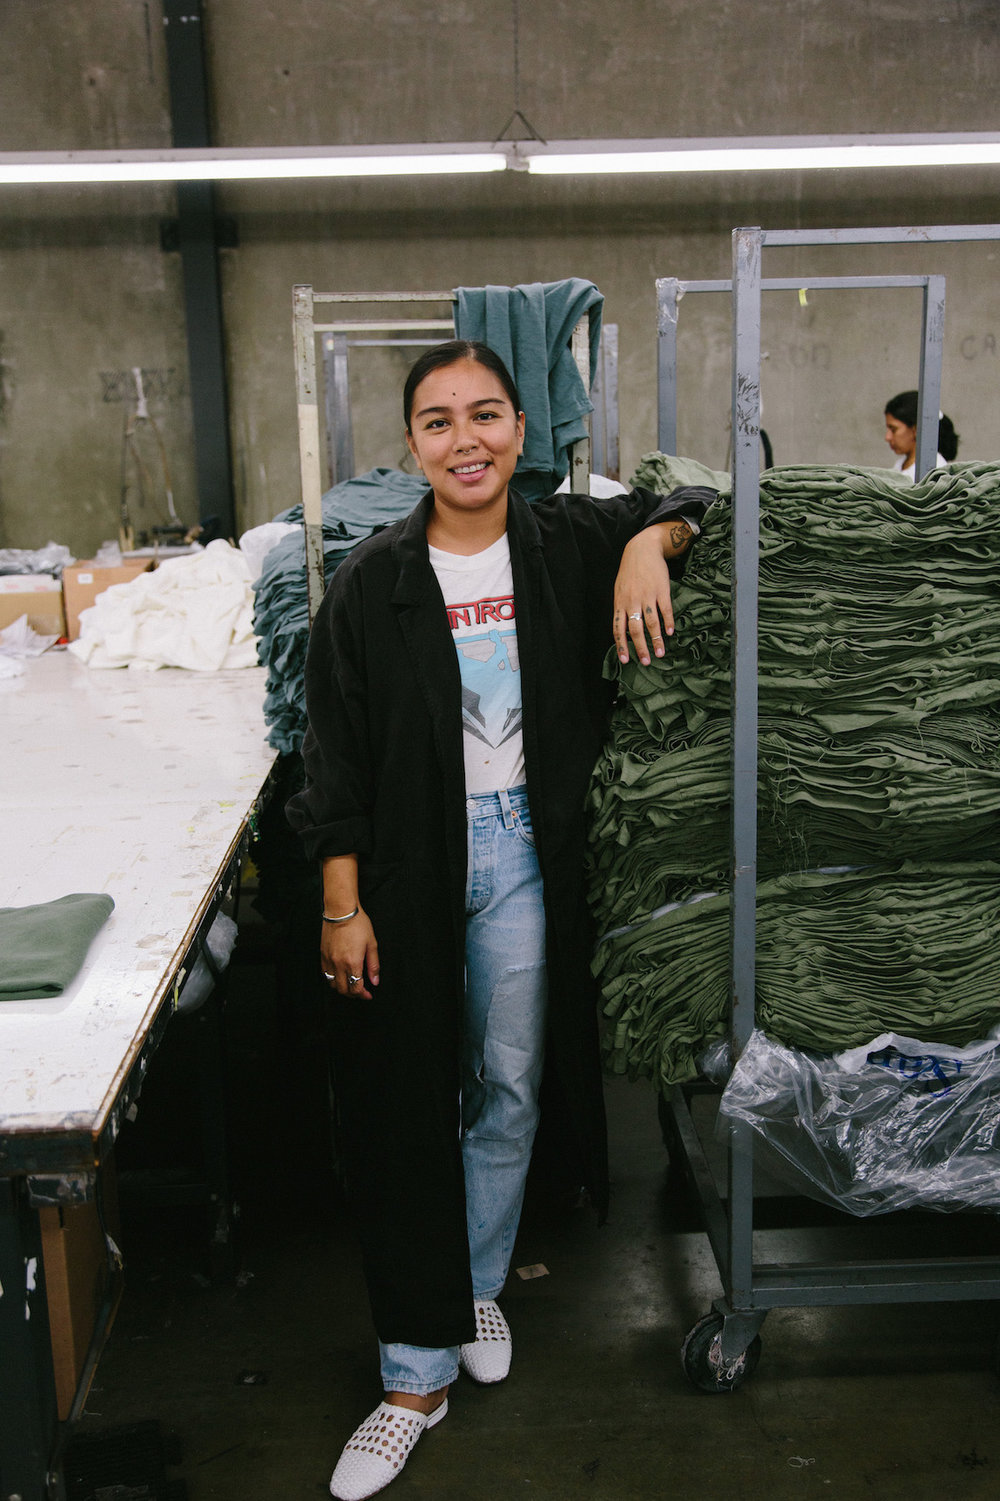 Black Tencel robe over vintage denim - A Week Of Super-Chill Conscious Fashion With Isadora Alvarez, Founder Of Back Beat Rags on The Good Trade